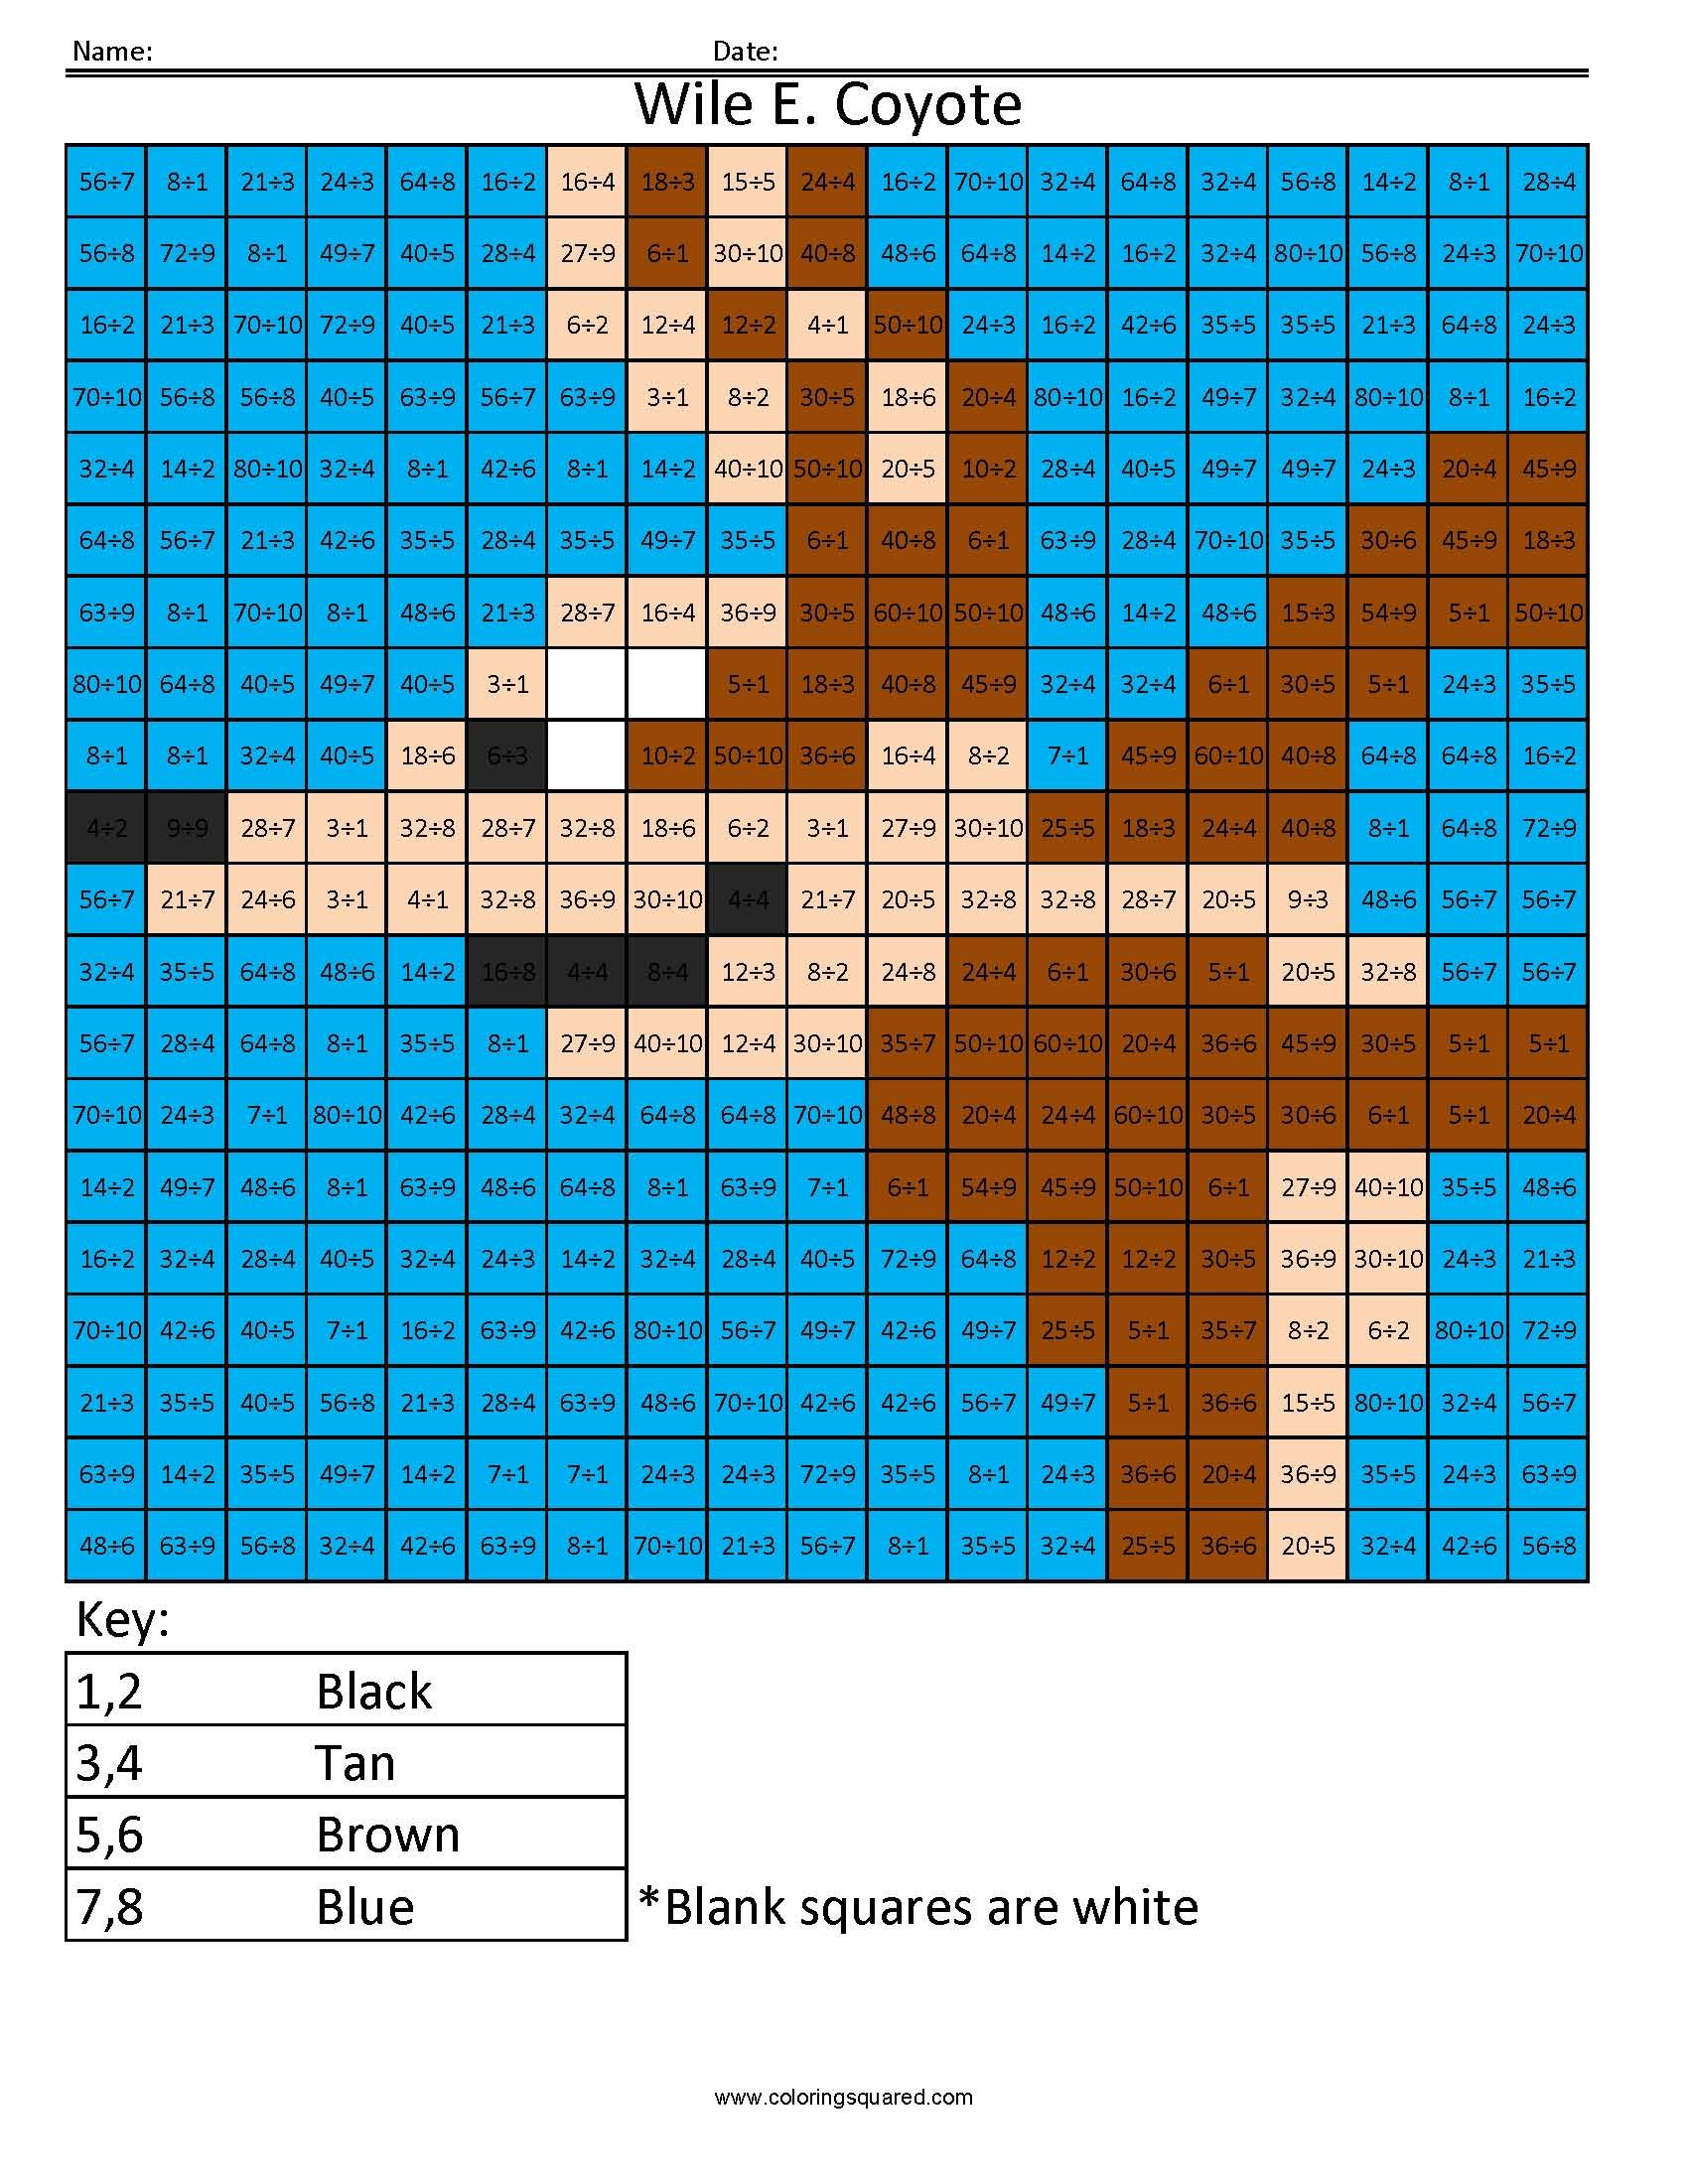 Wile e coyote advanced division answer key school pinterest wile e coyote advanced division answer key fandeluxe Choice Image